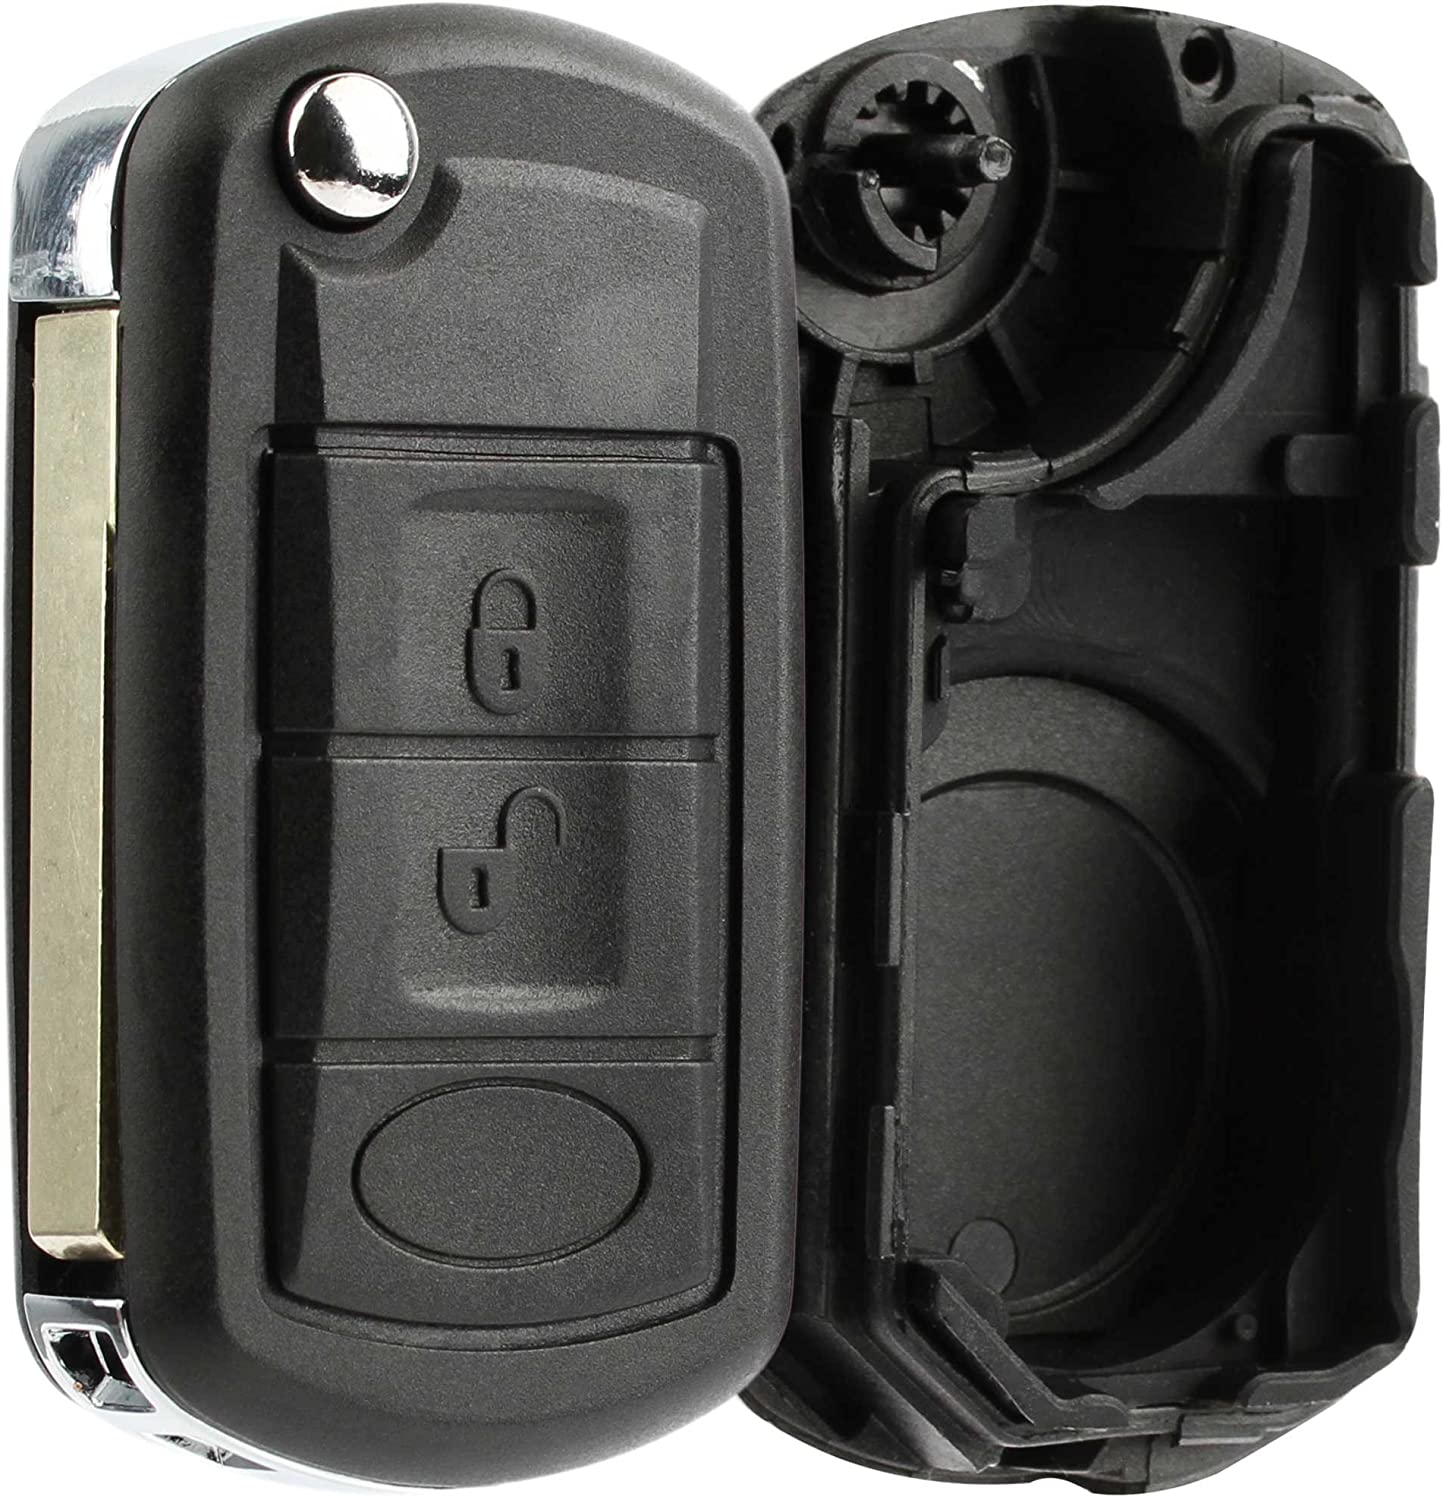 KeylessOption Keyless Entry Remote Key Fob Shell Case Button Pad Flip Key Cover Housing For Land Rover